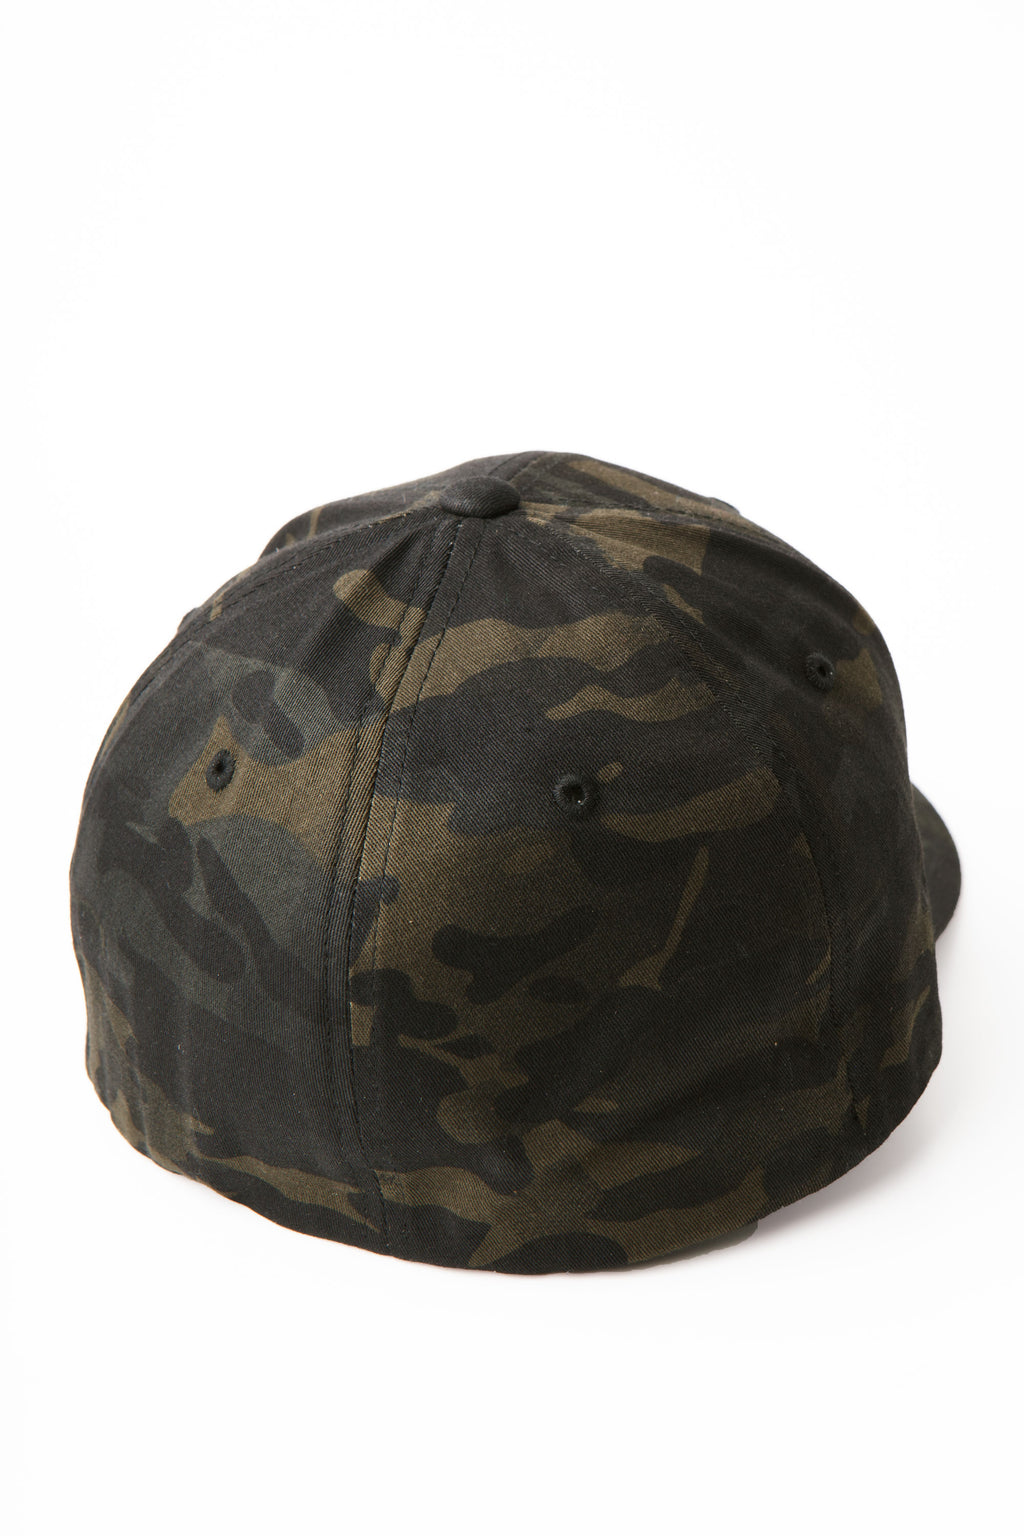 The back of the camo baseball cap showing a flat non-adjustable back